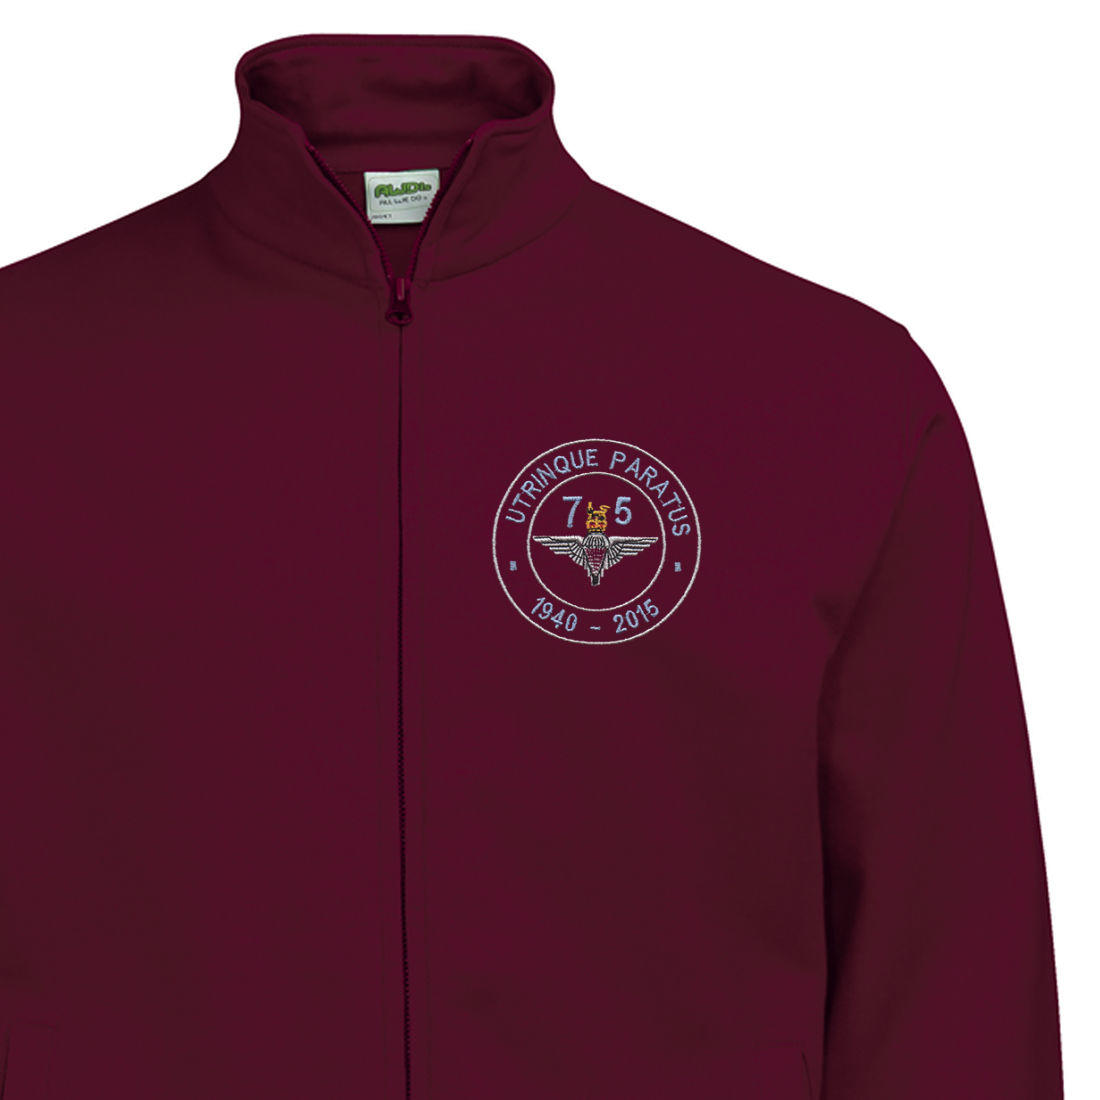 Zip-Up Sweatshirt - Maroon - Airborne 75 (Para)